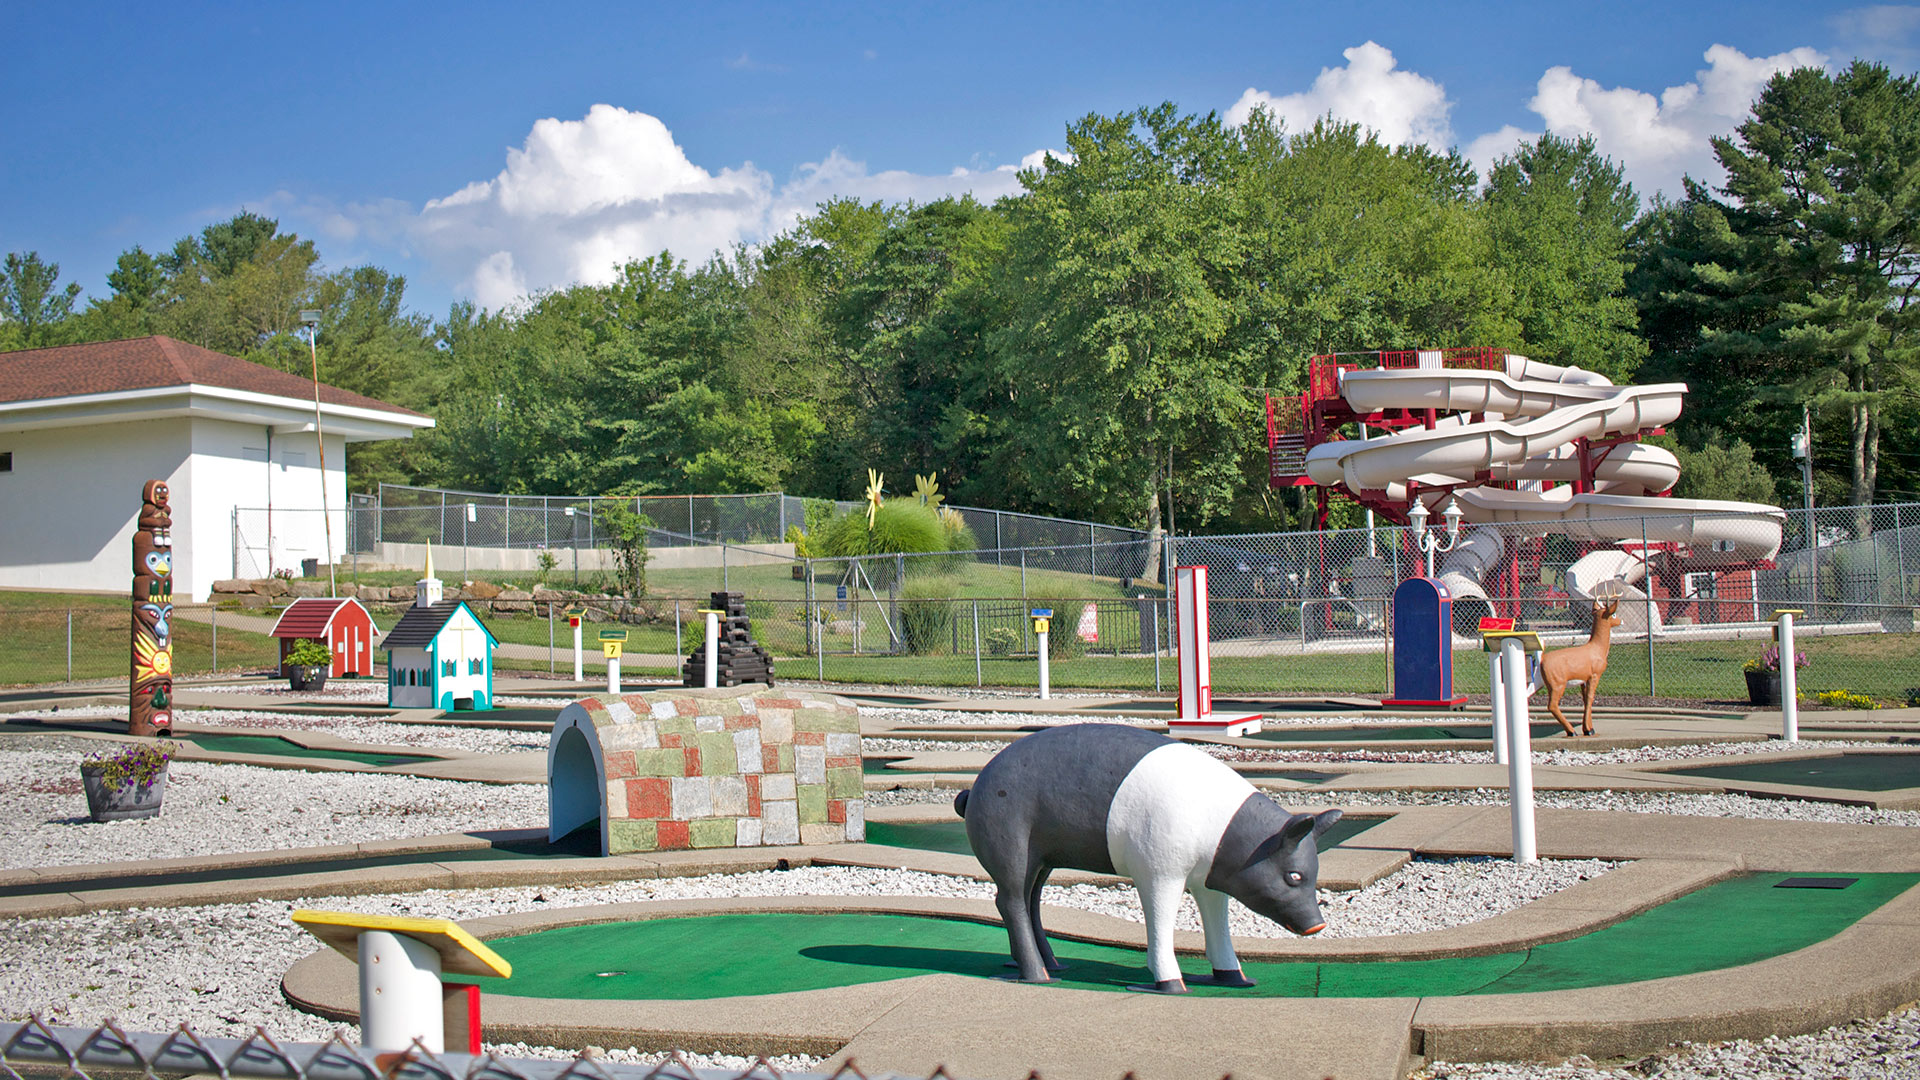 Mini Golf with Waterslides